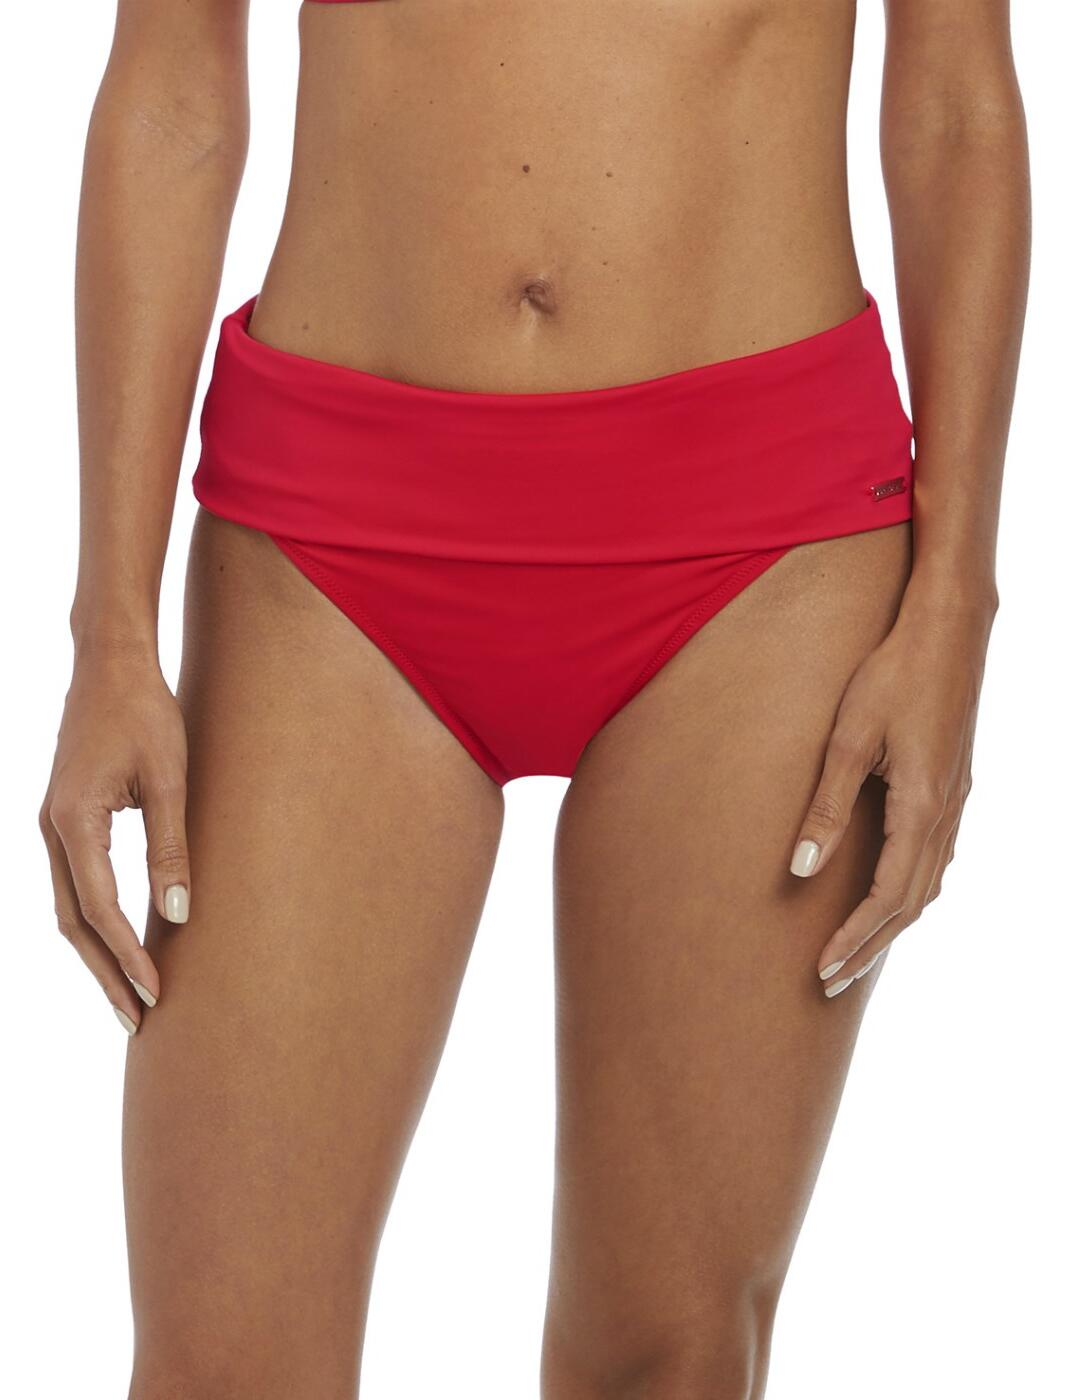 6695 Fantasie Marseille Classic Fold Brief - 6695 Sunset